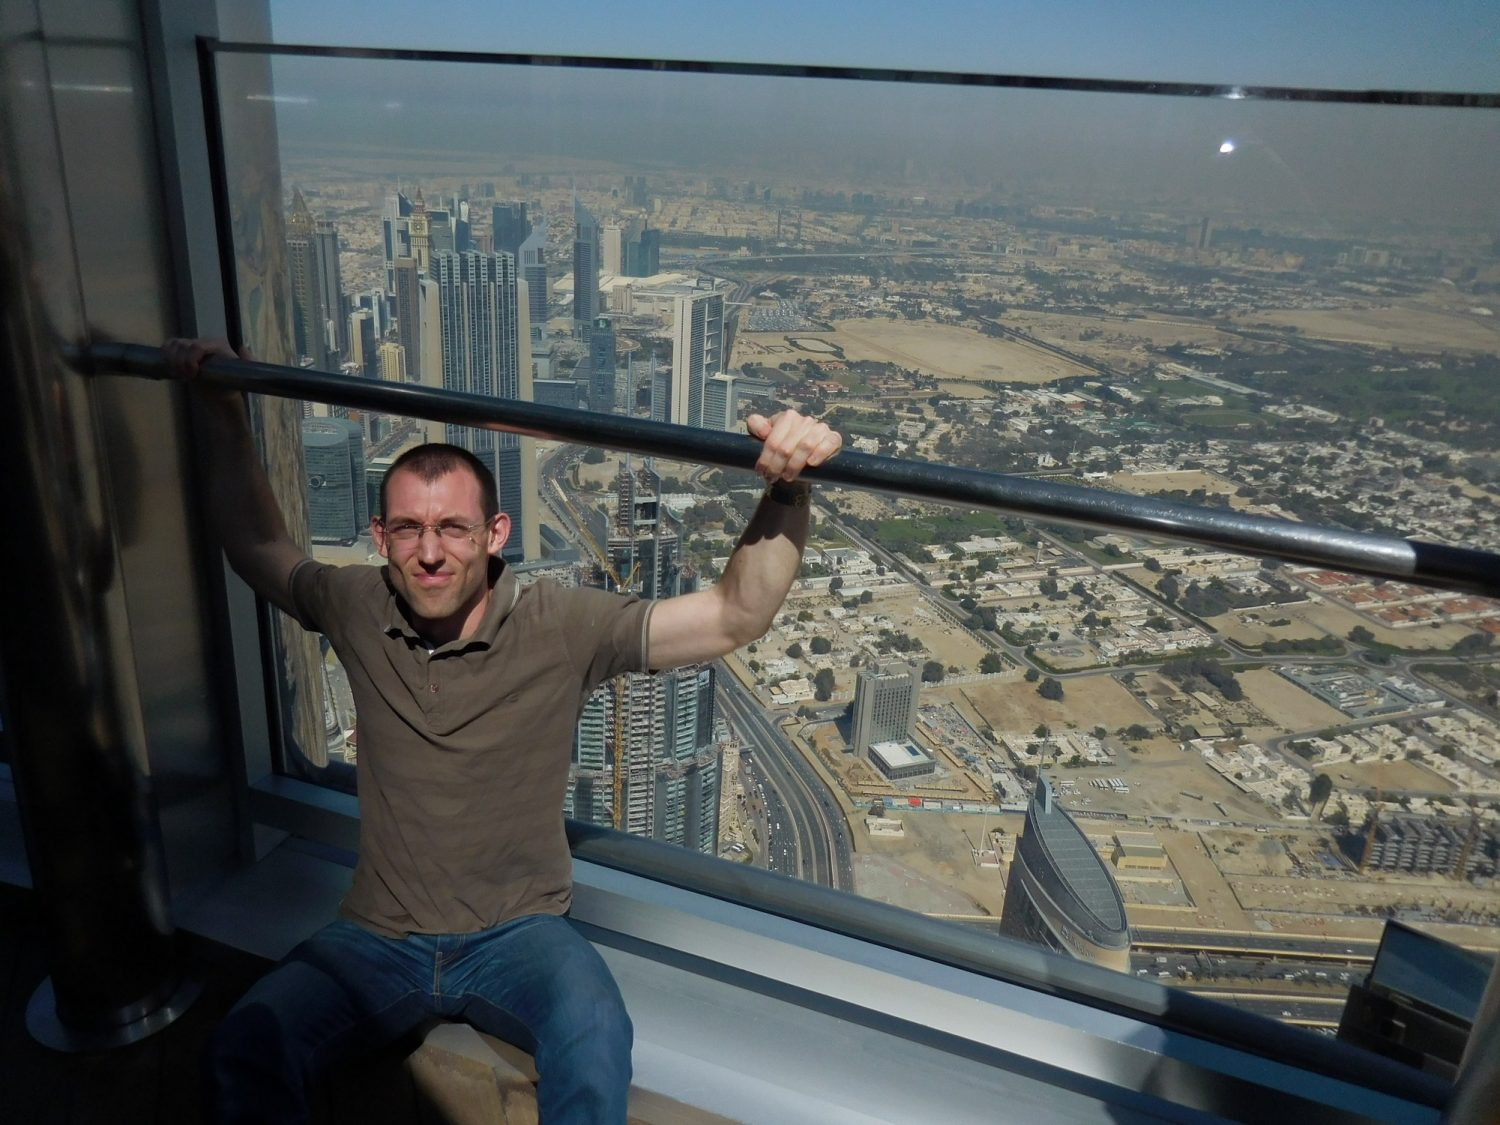 Dubai, Burj Khalifa, Open-Air Observation Deck, UAE